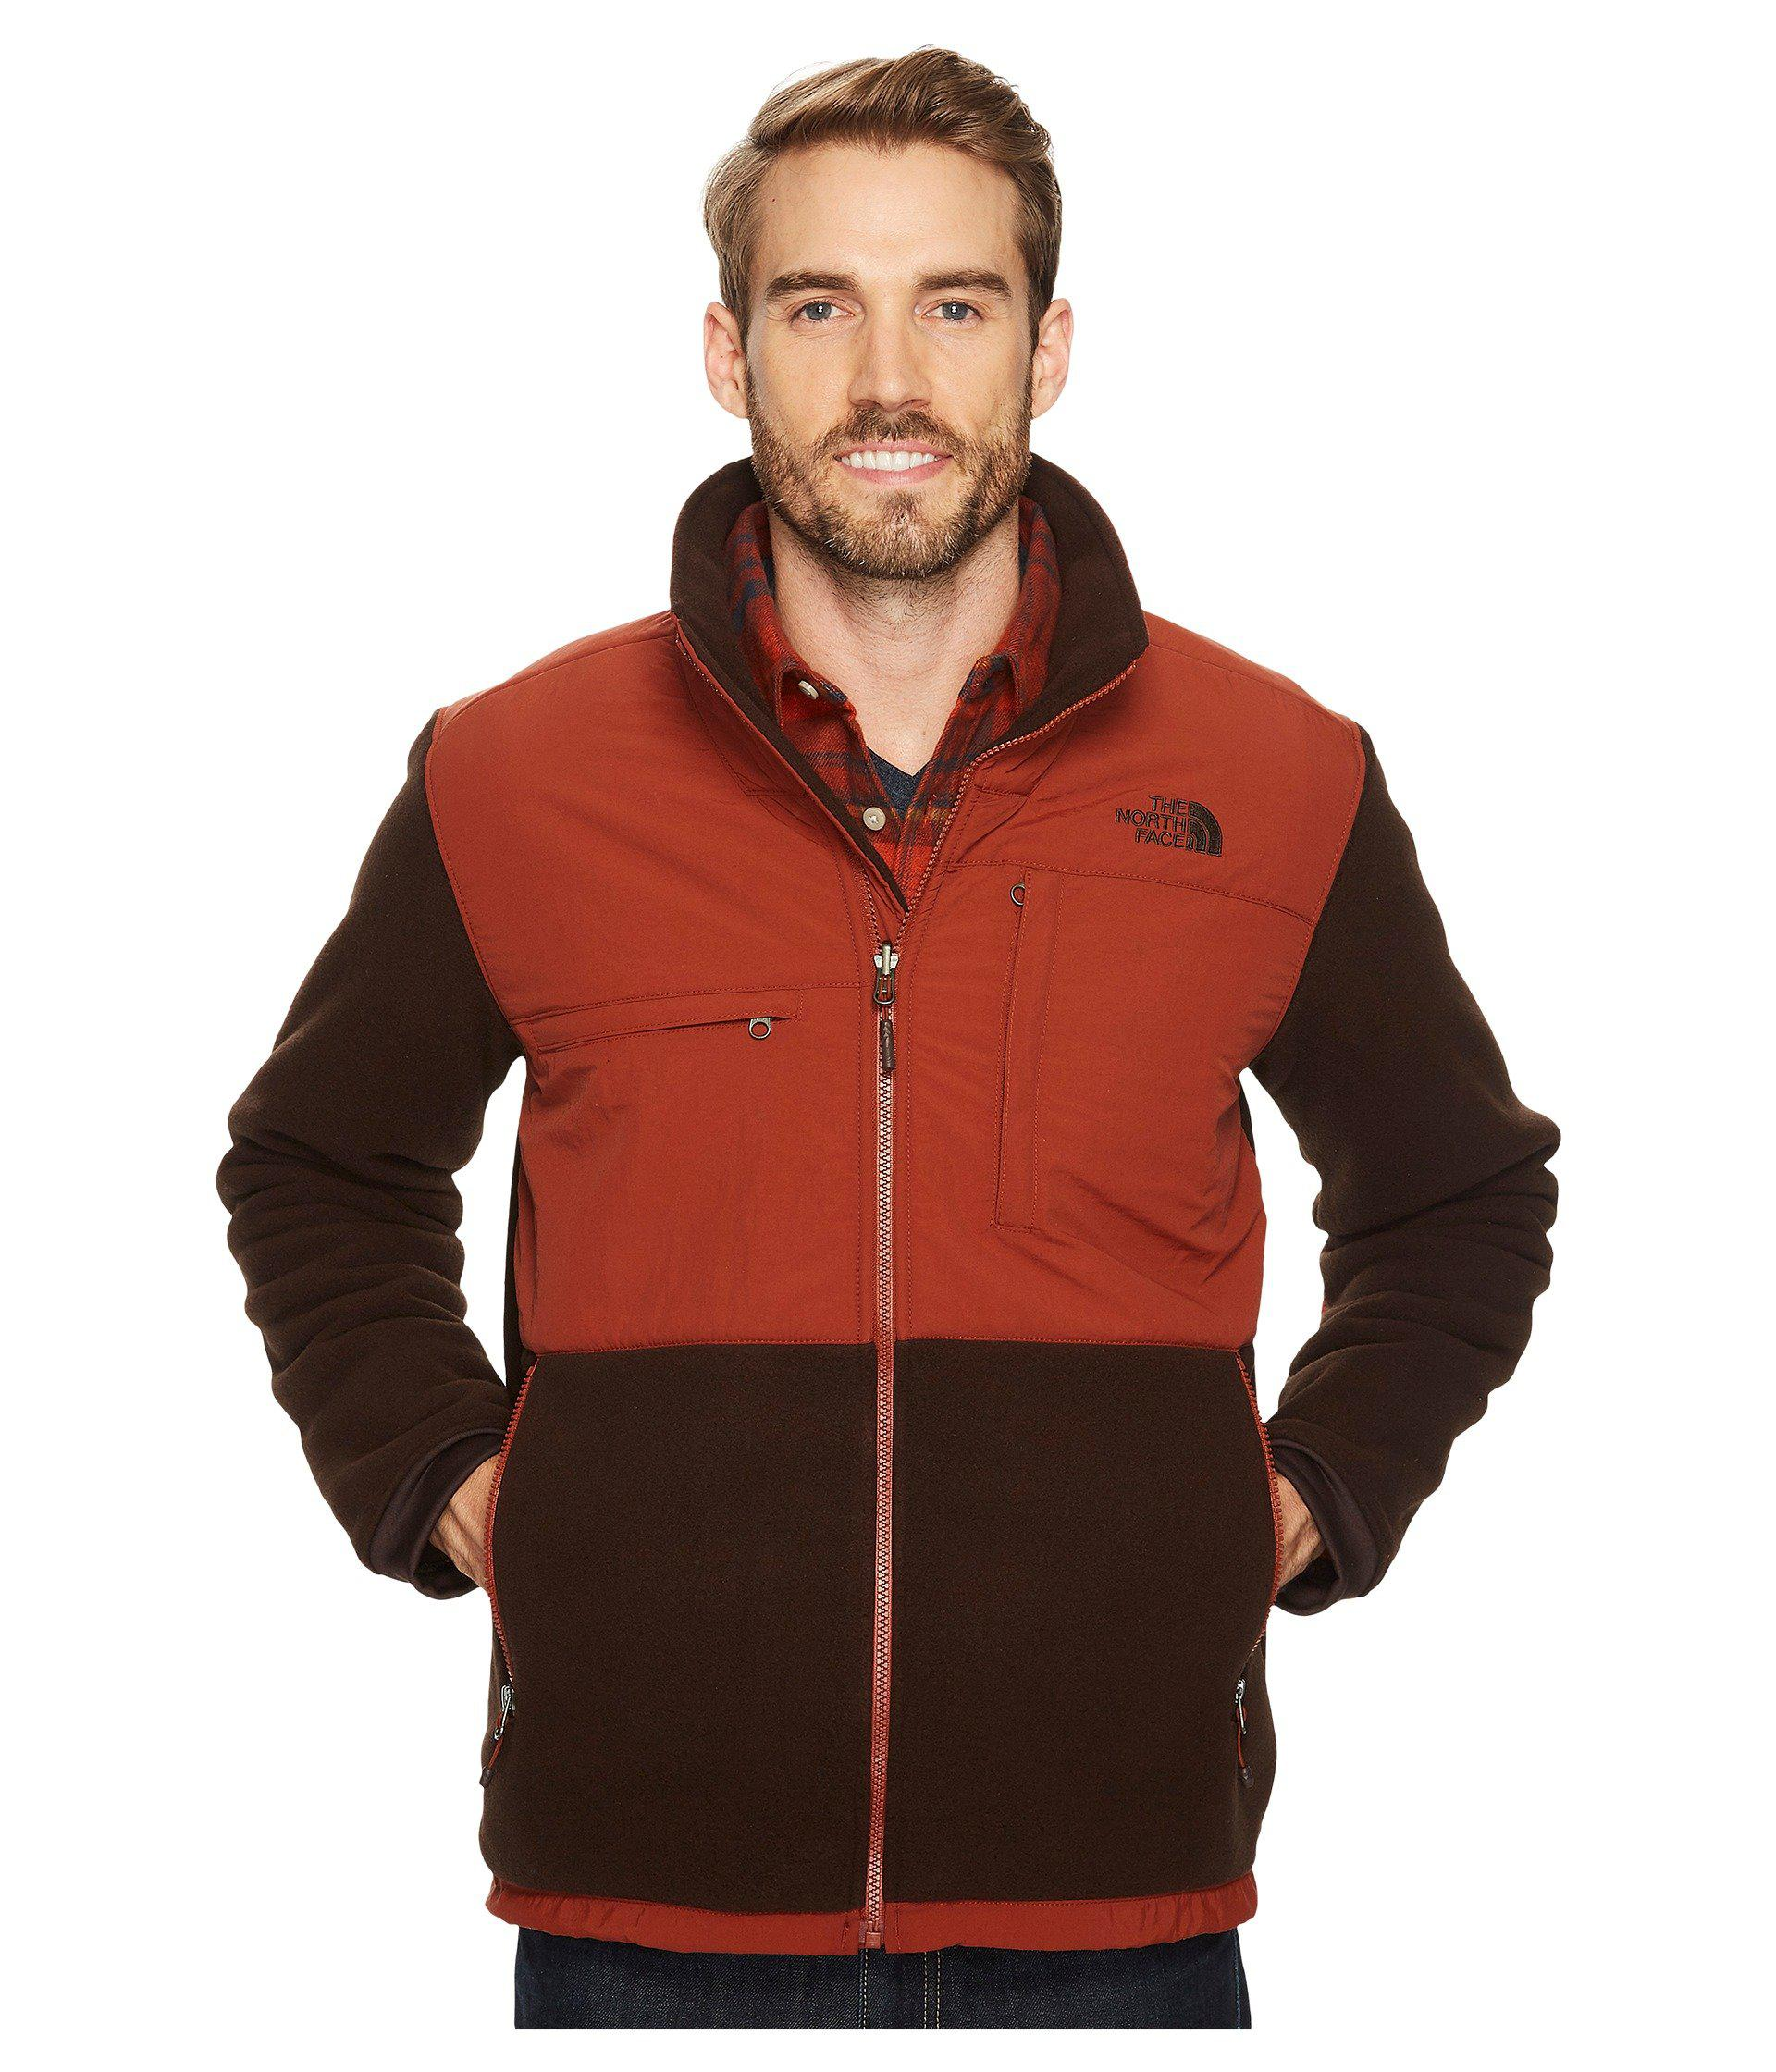 a20fd98da523 Lyst - The North Face Denali 2 Jacket in Brown for Men - Save 17%